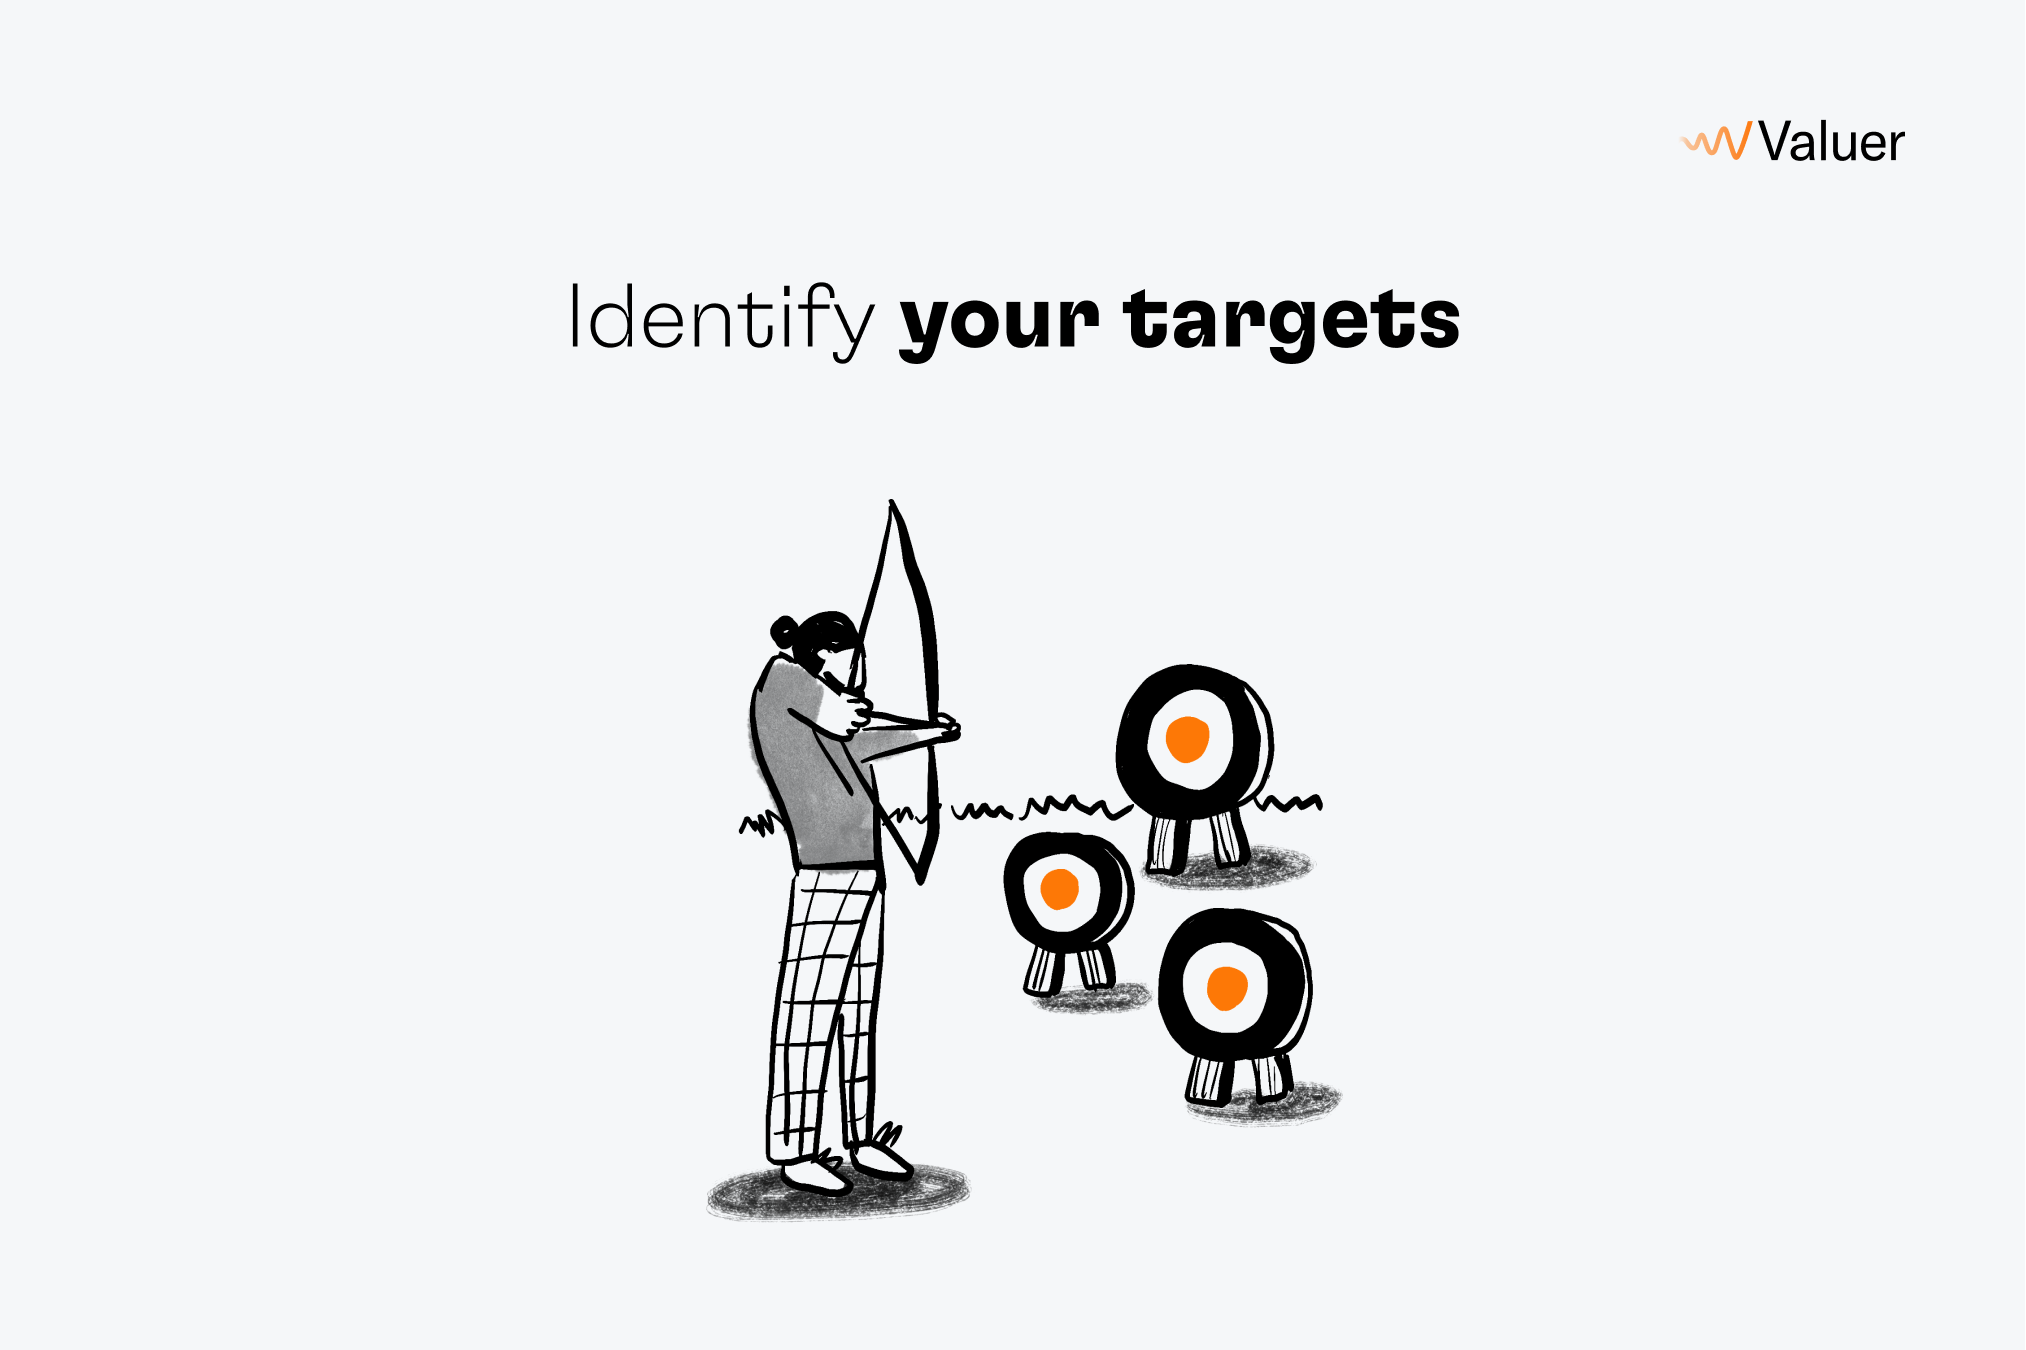 Identify your targets